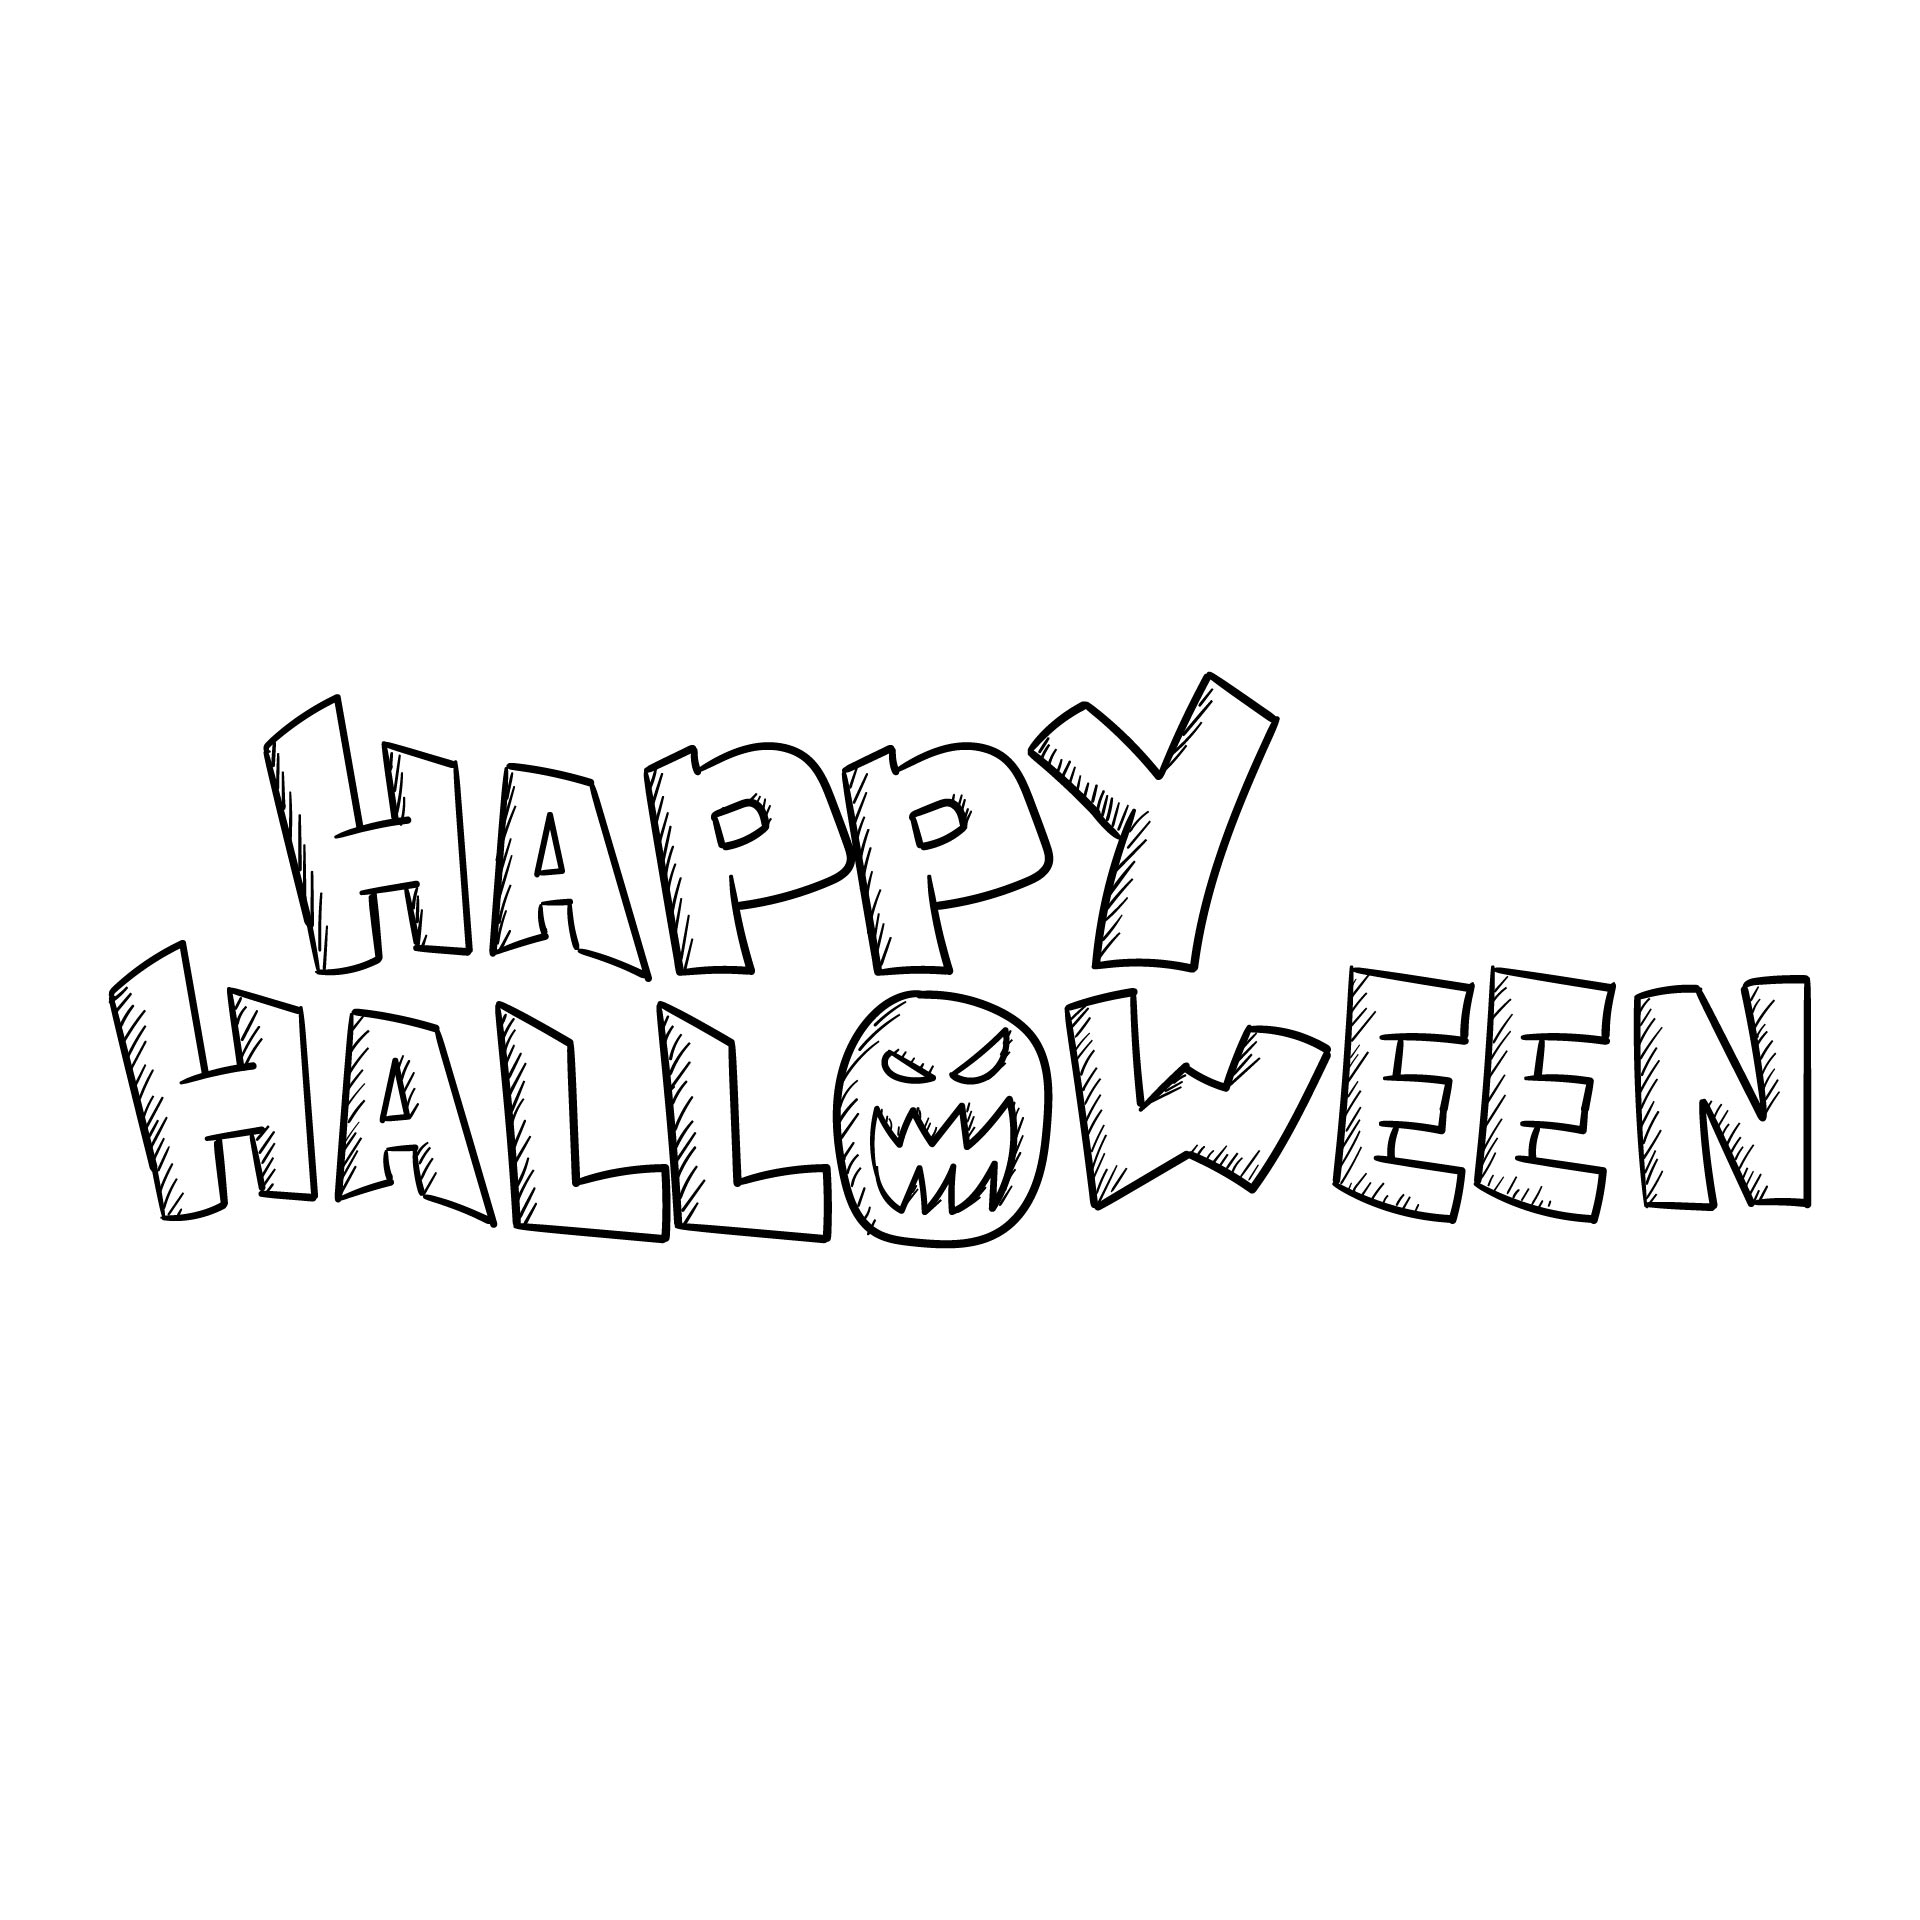 halloween letters coloring pages - photo#35